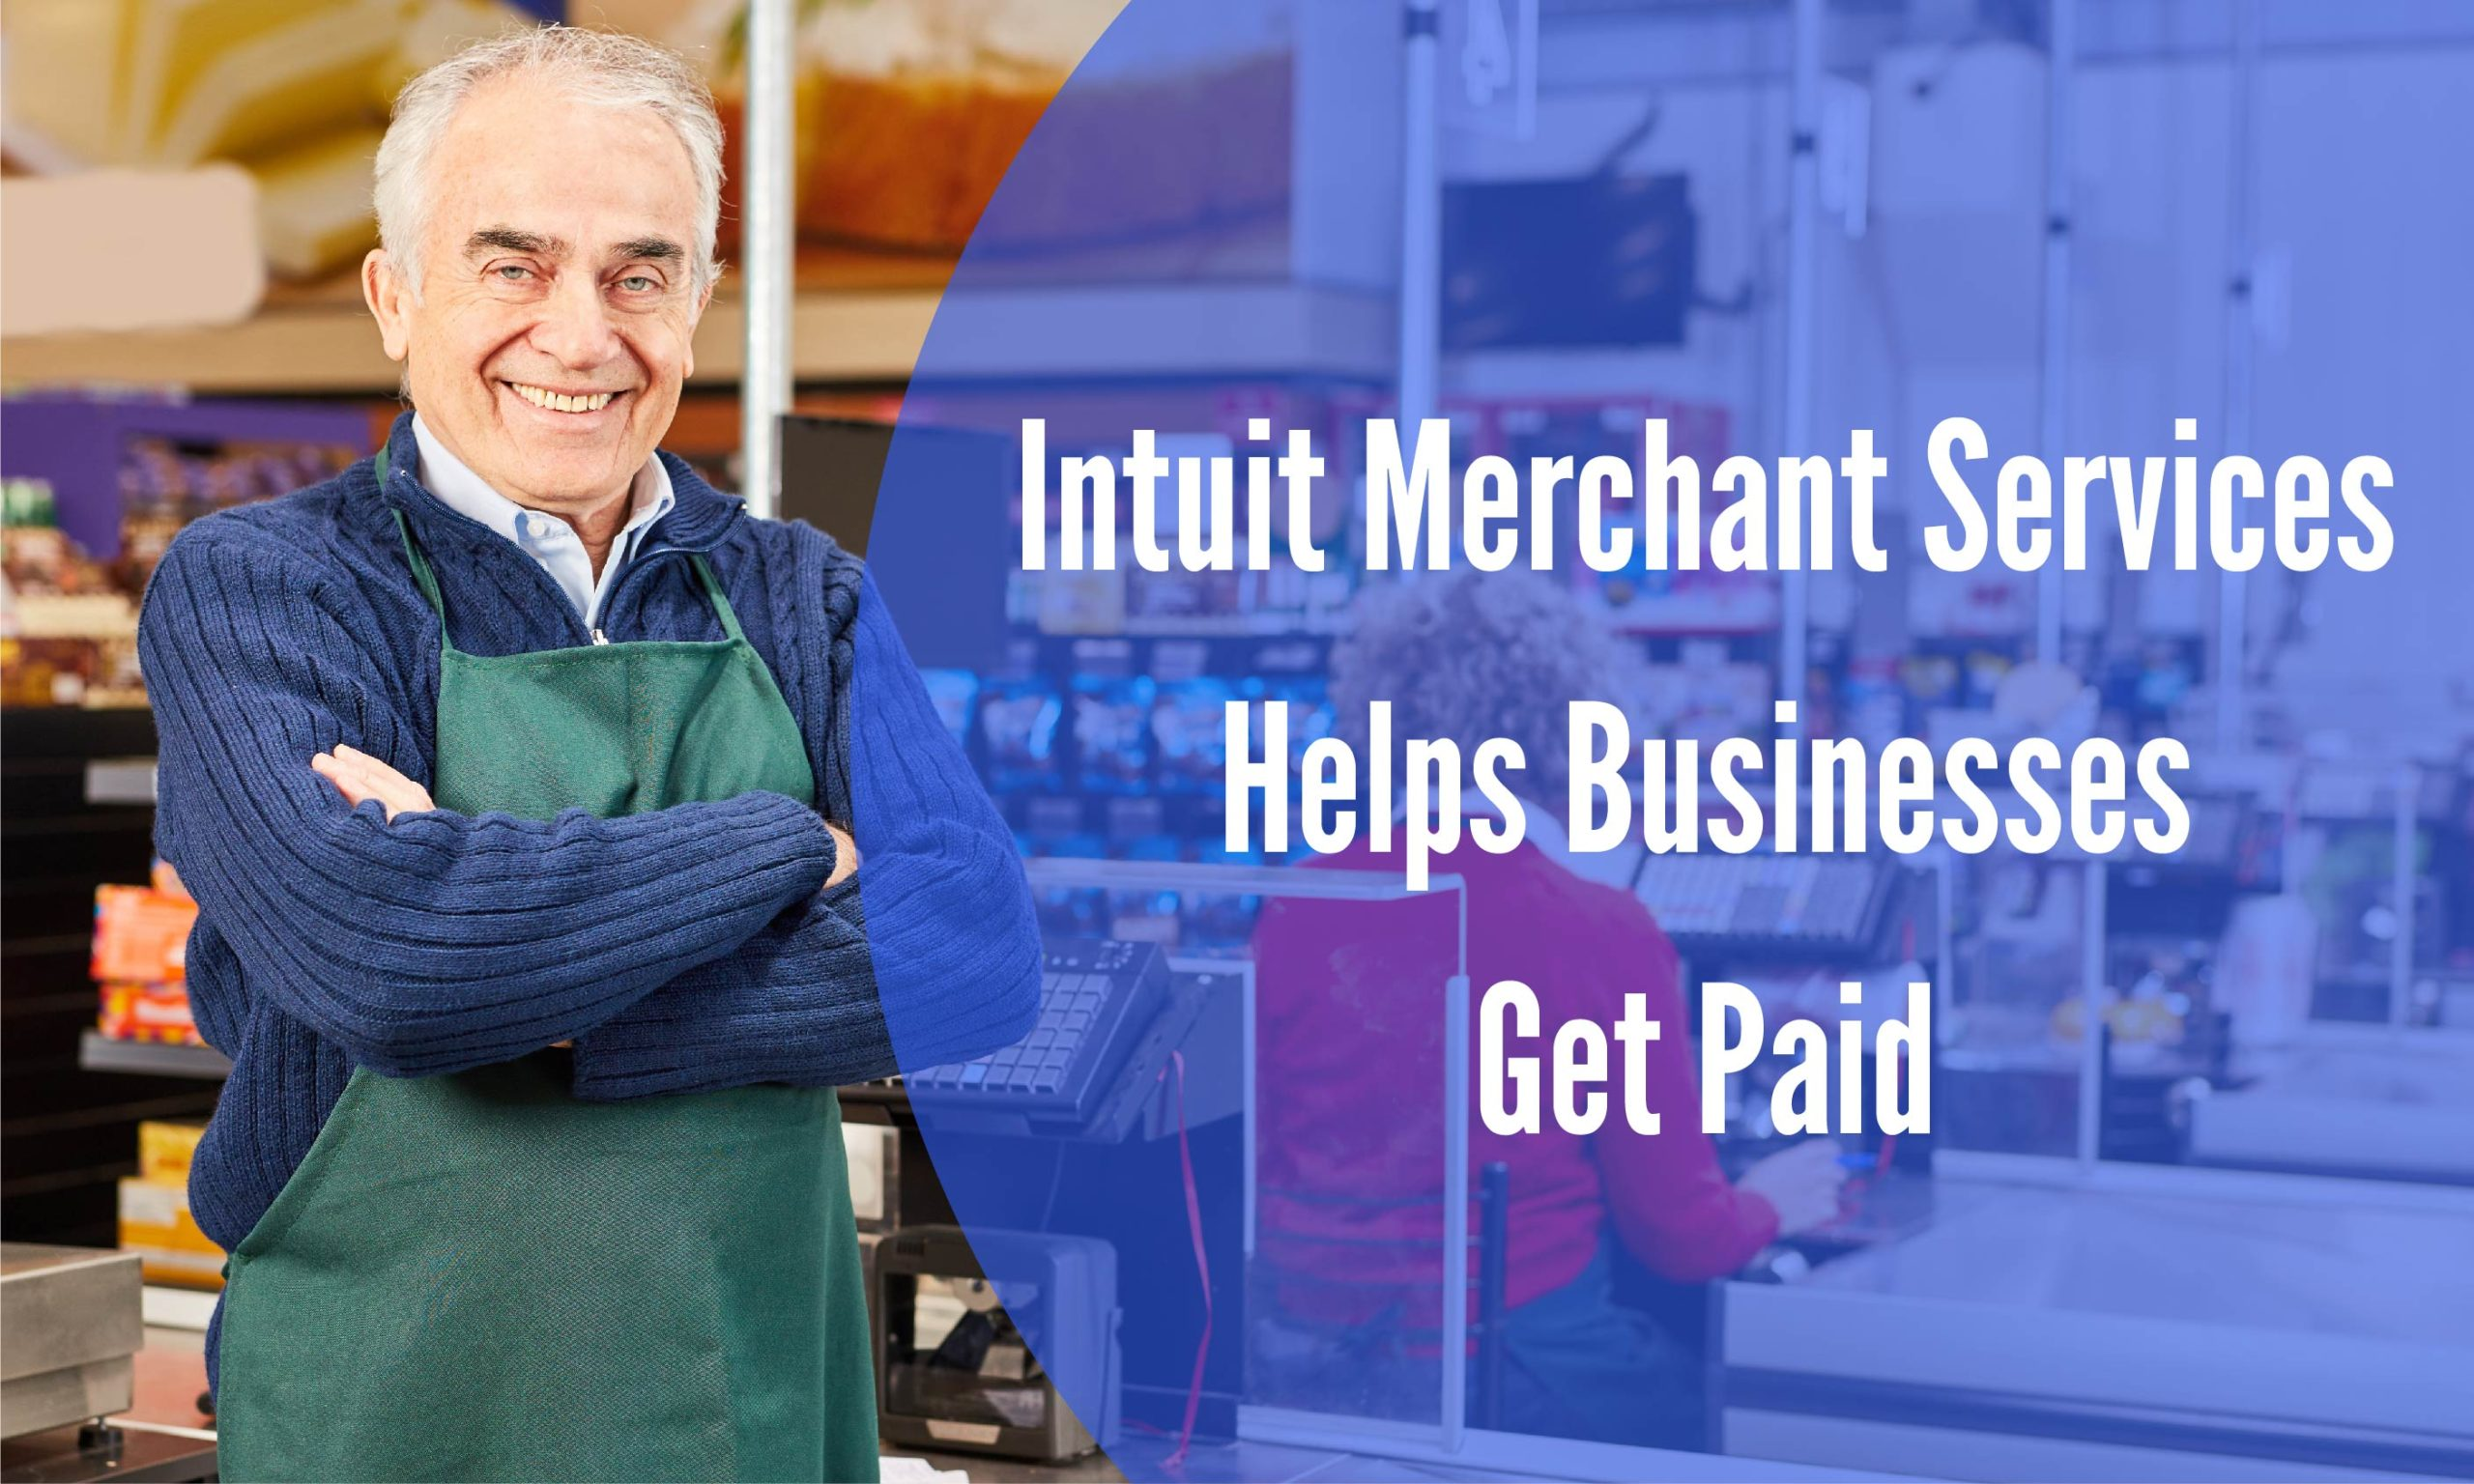 Intuit Merchant Services Helps Businesses Get Paid